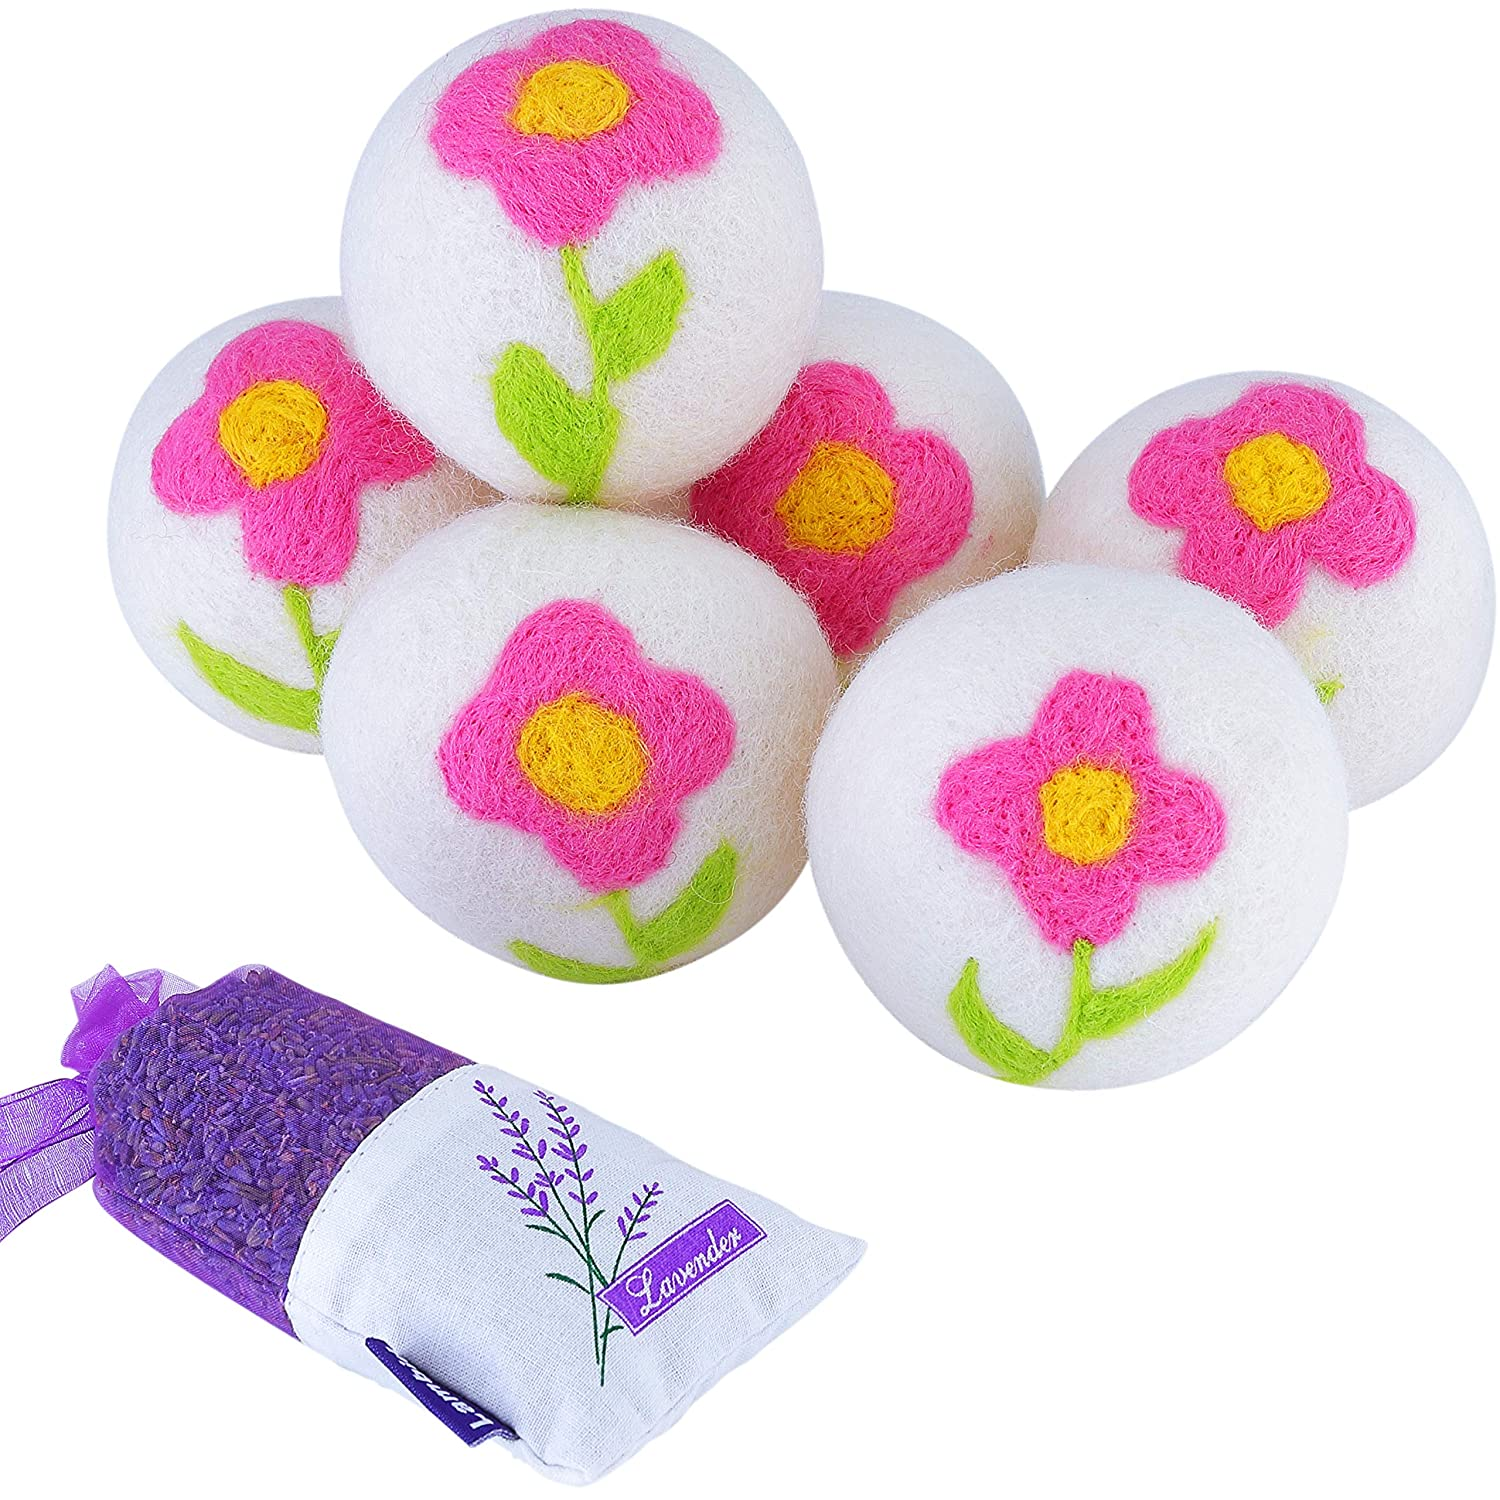 Wool Dryer Balls for Laundry with Delicate Country Garden Floral Pattern, 6 Pack 100% Organic NZ Wool - Reusable Eco Dryer Balls | Odorless Natural Fabric Softener, Less Wrinkles & Anti Static Cling